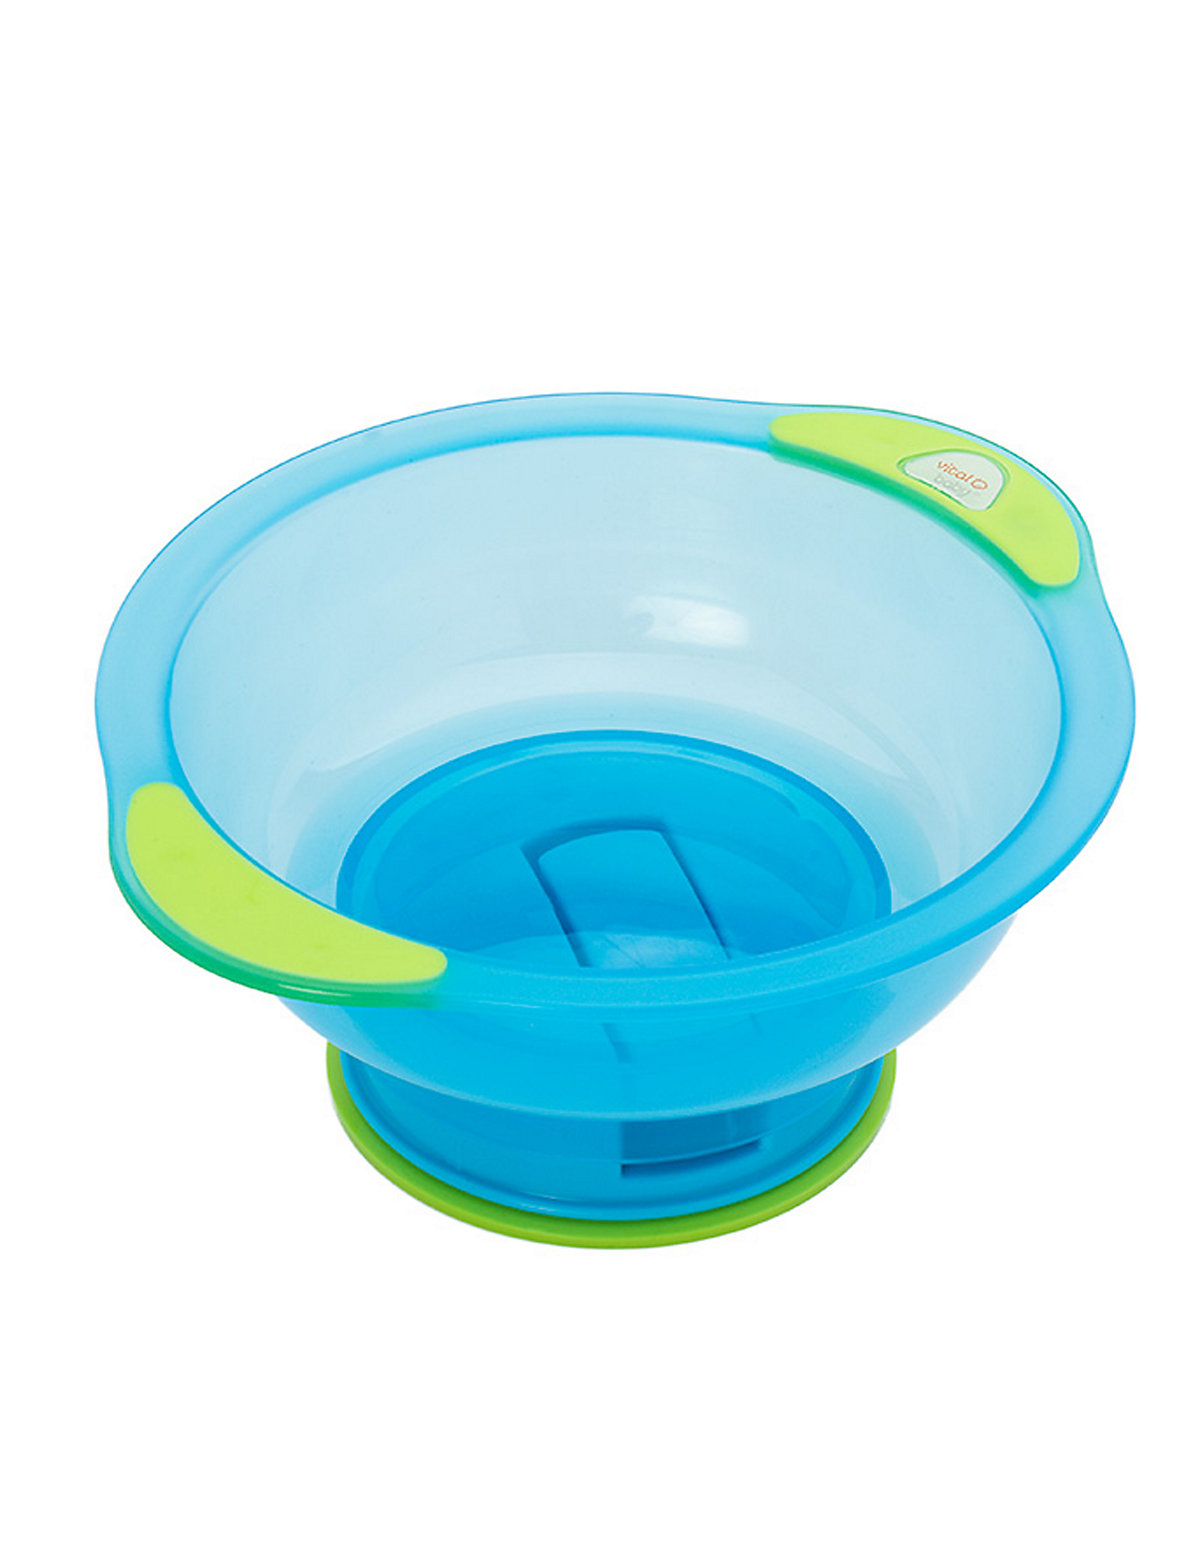 Vital Baby Suction Unbelievable Bowl